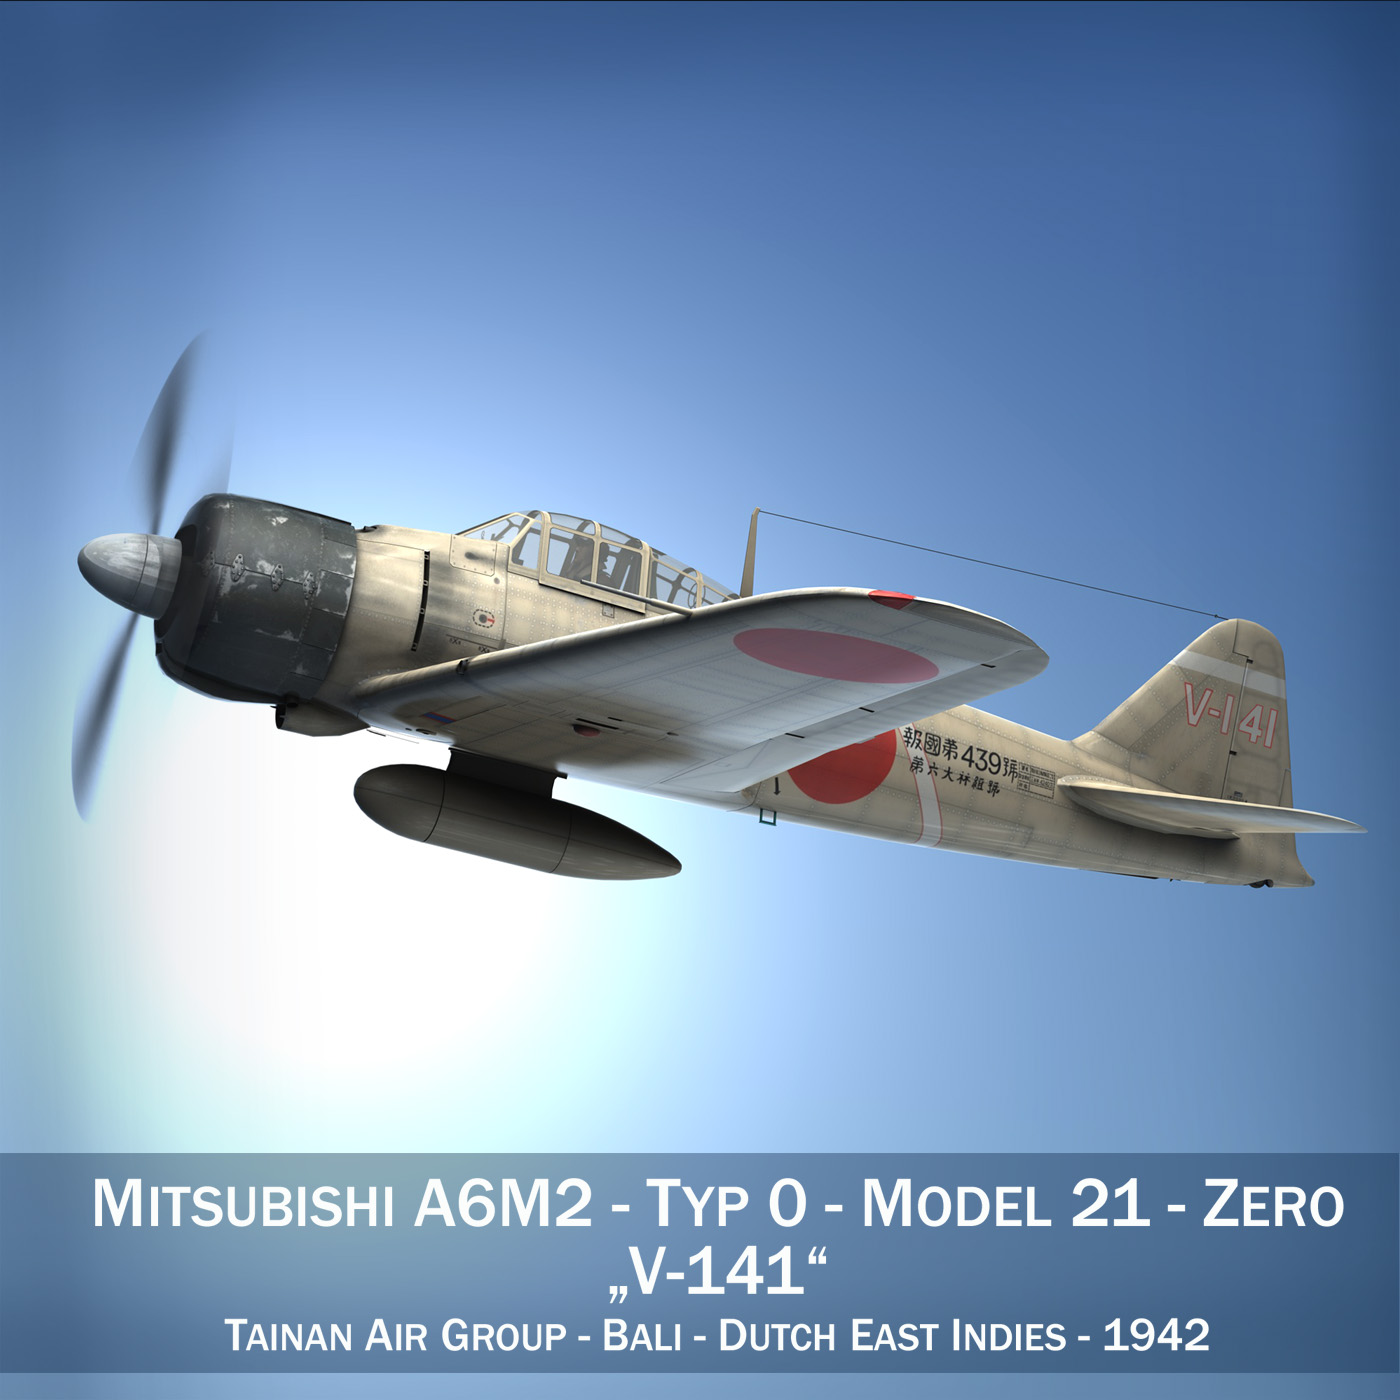 mitsubishi a6m2 zero - tainan air group 3d model fbx lwo obj 272715